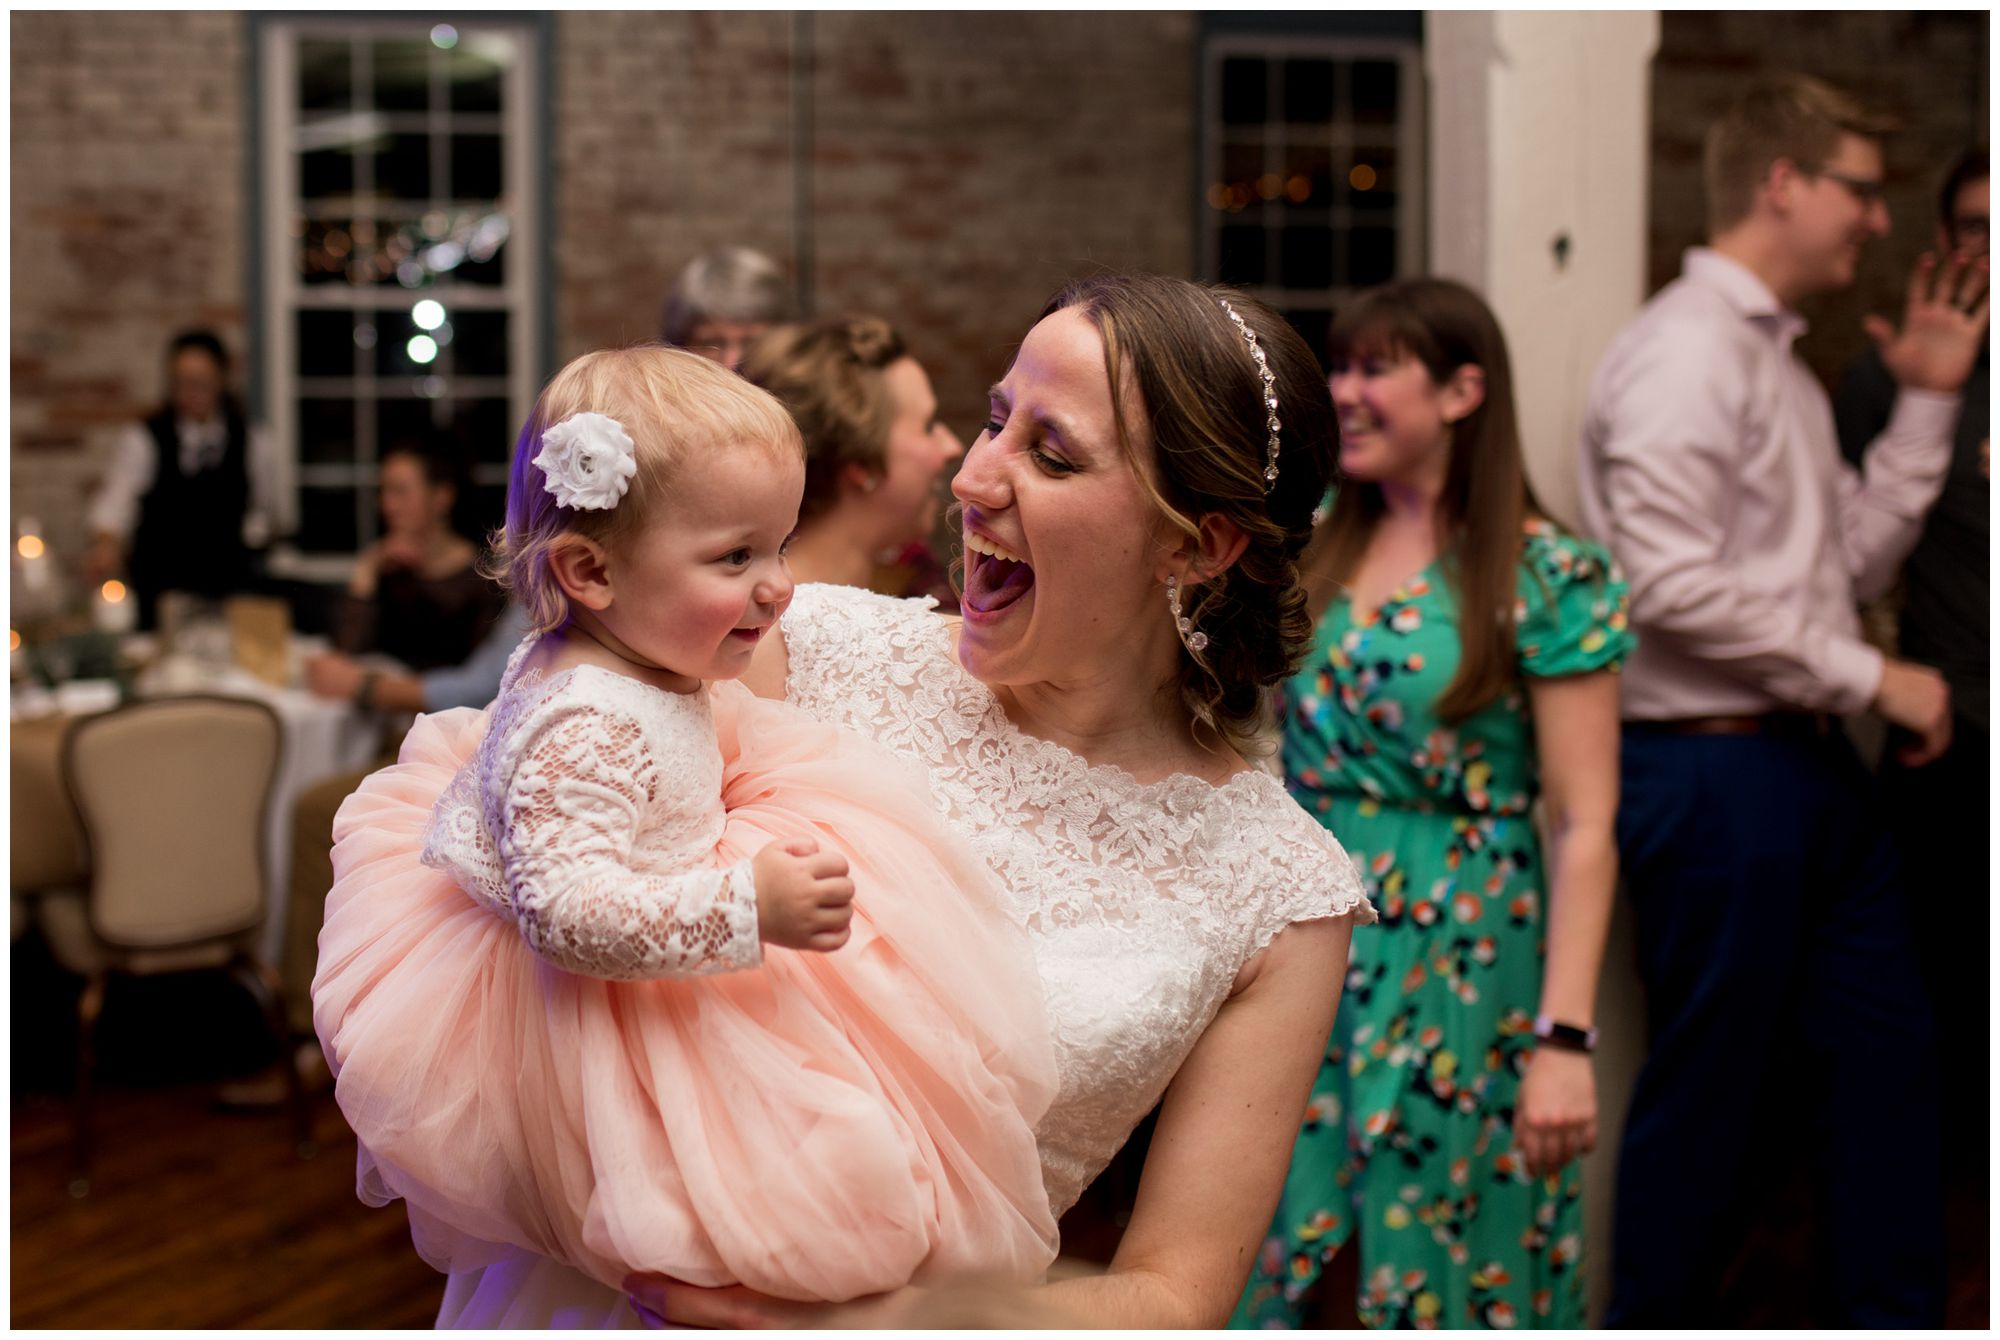 bride dances with flower girl at Bread & Chocolate wedding reception